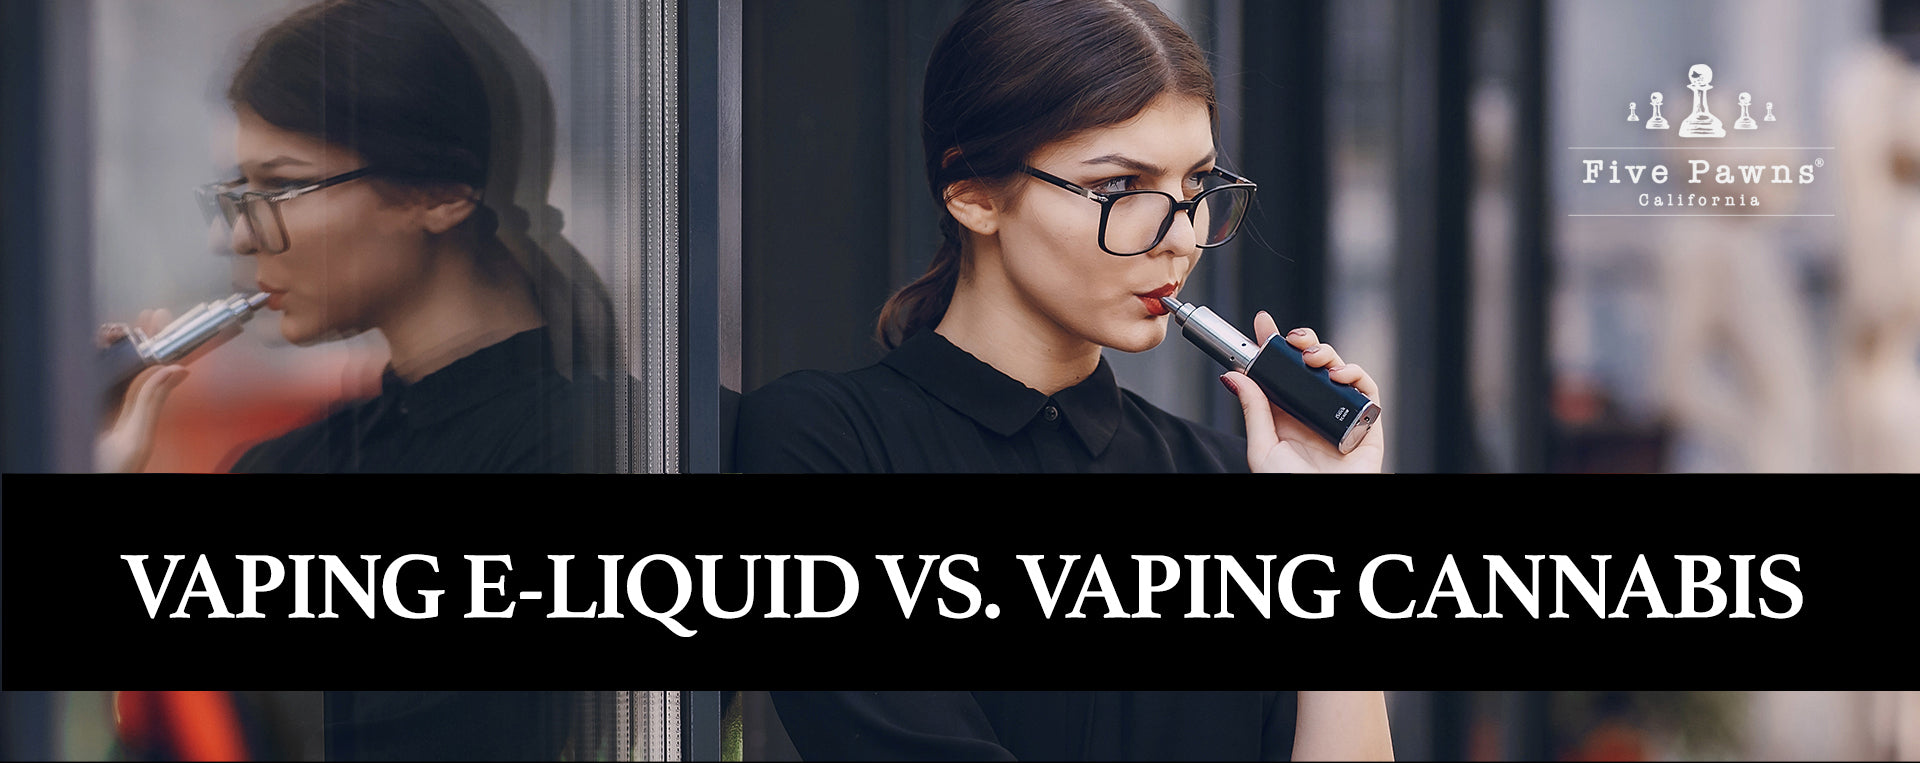 Vaping E-Liquid vs. Vaping Cannabis